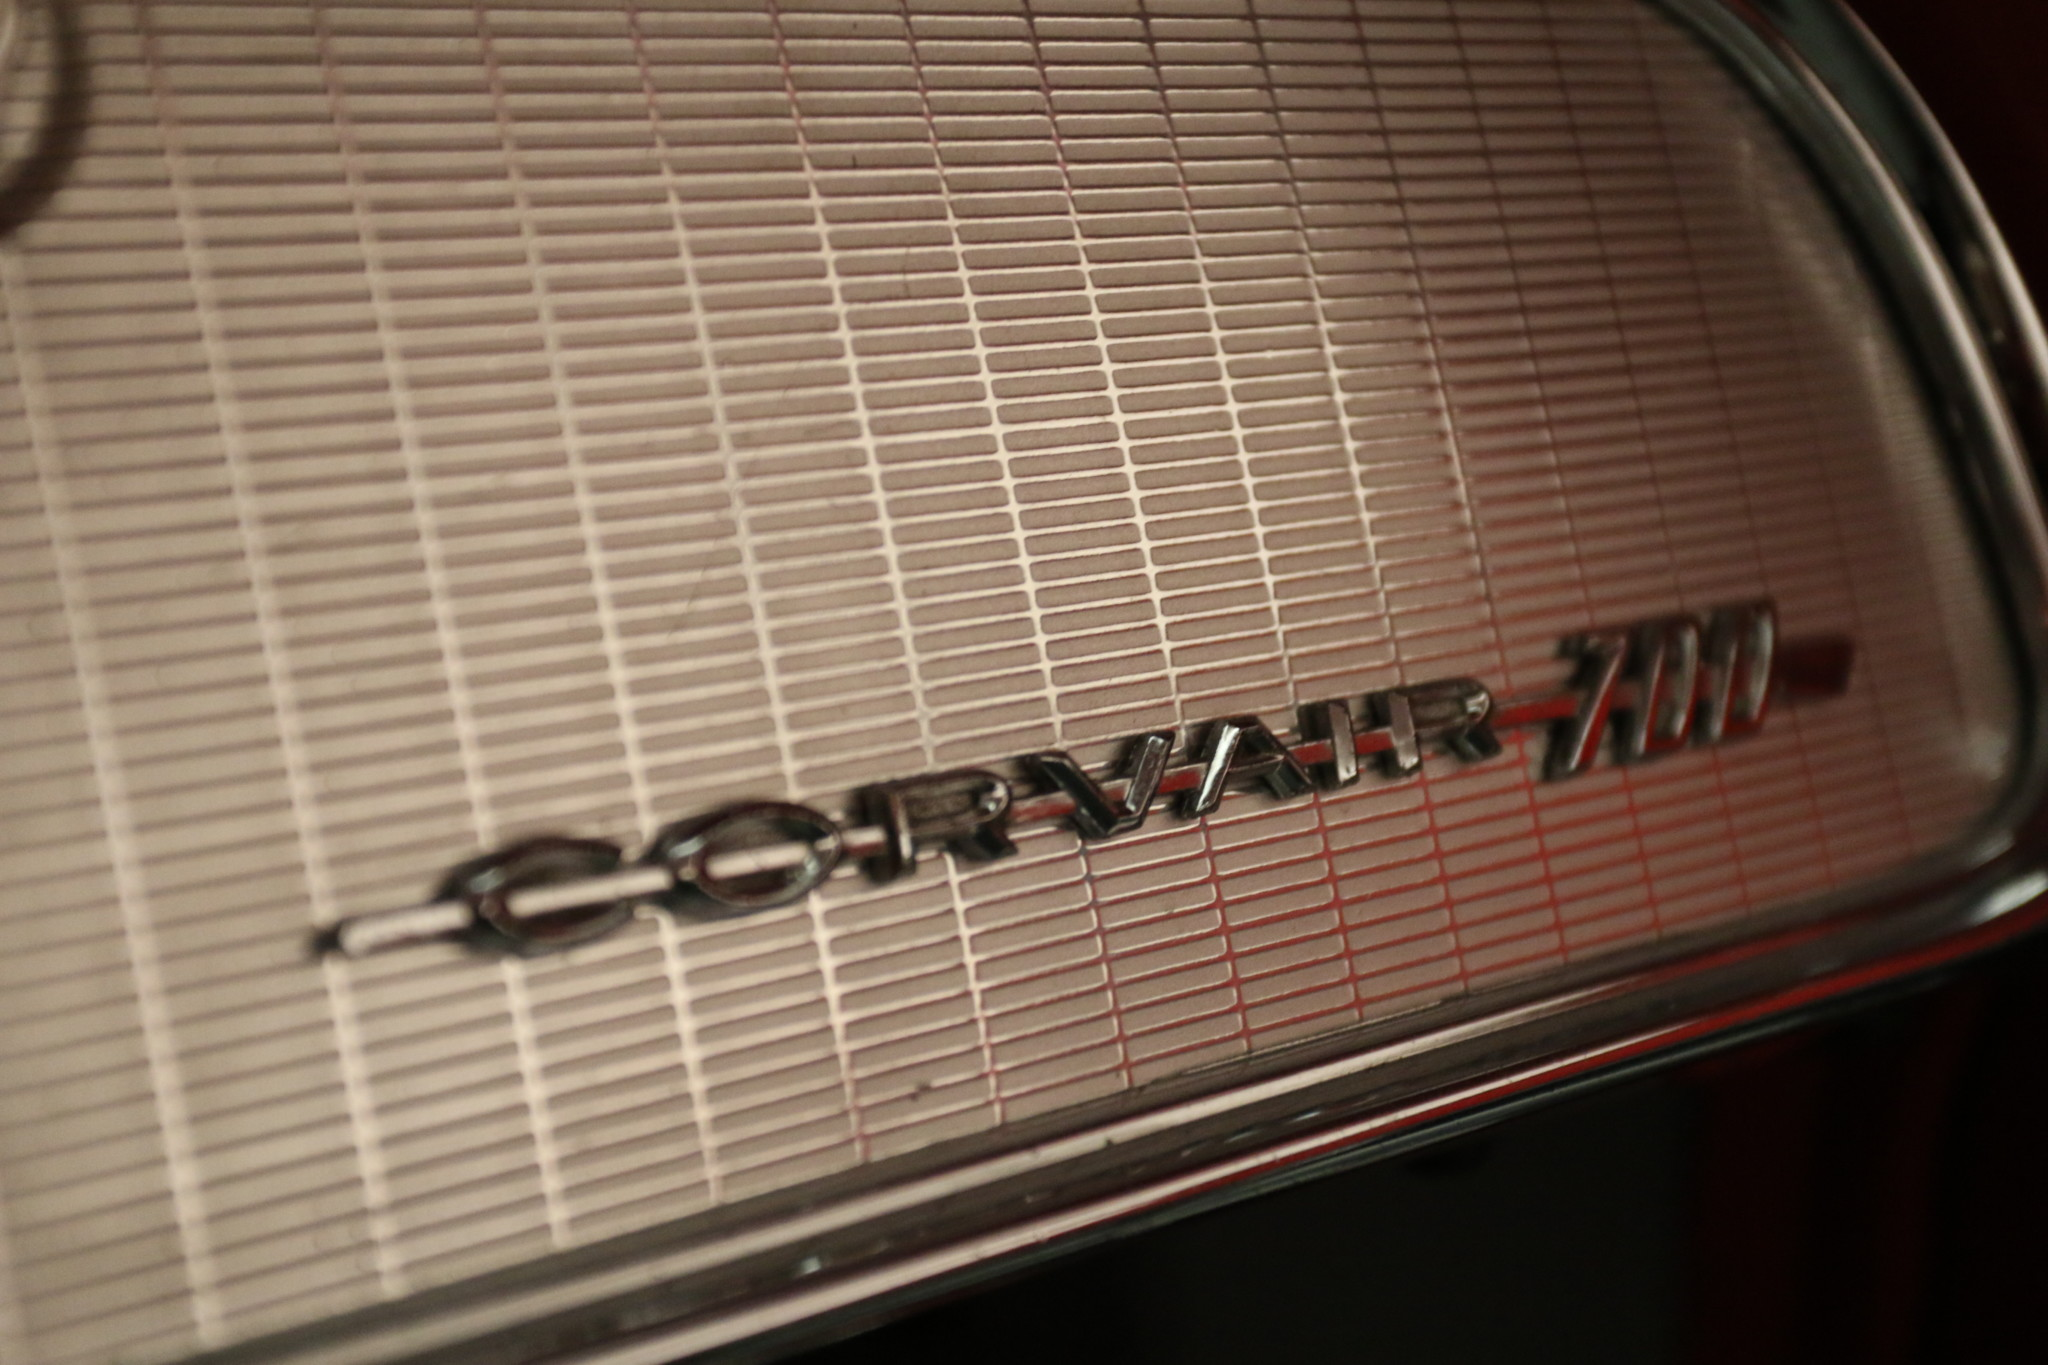 1960 Chevrolet Corvair 700 interior badge